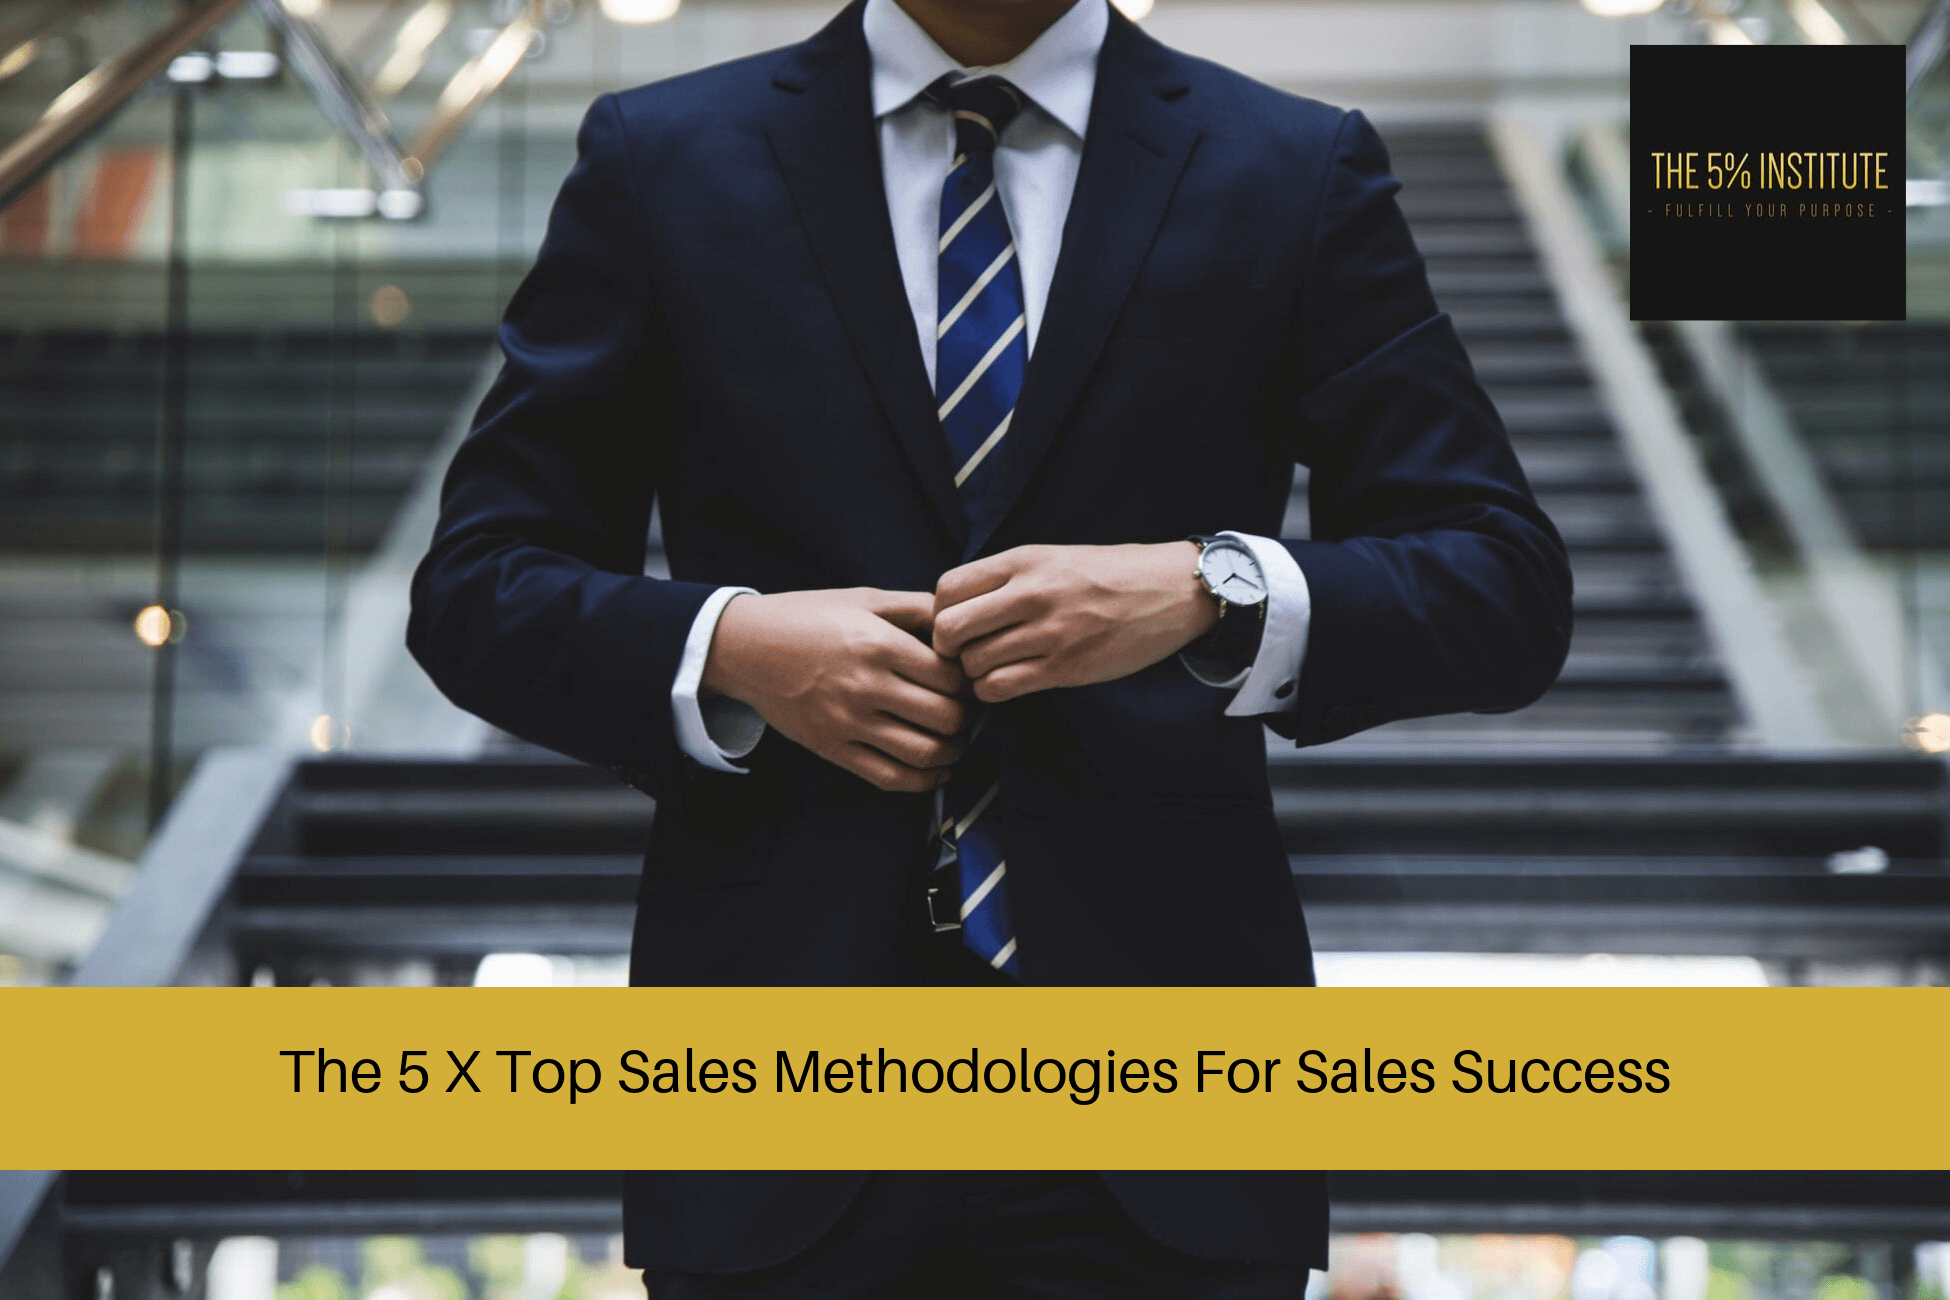 sales methodologies